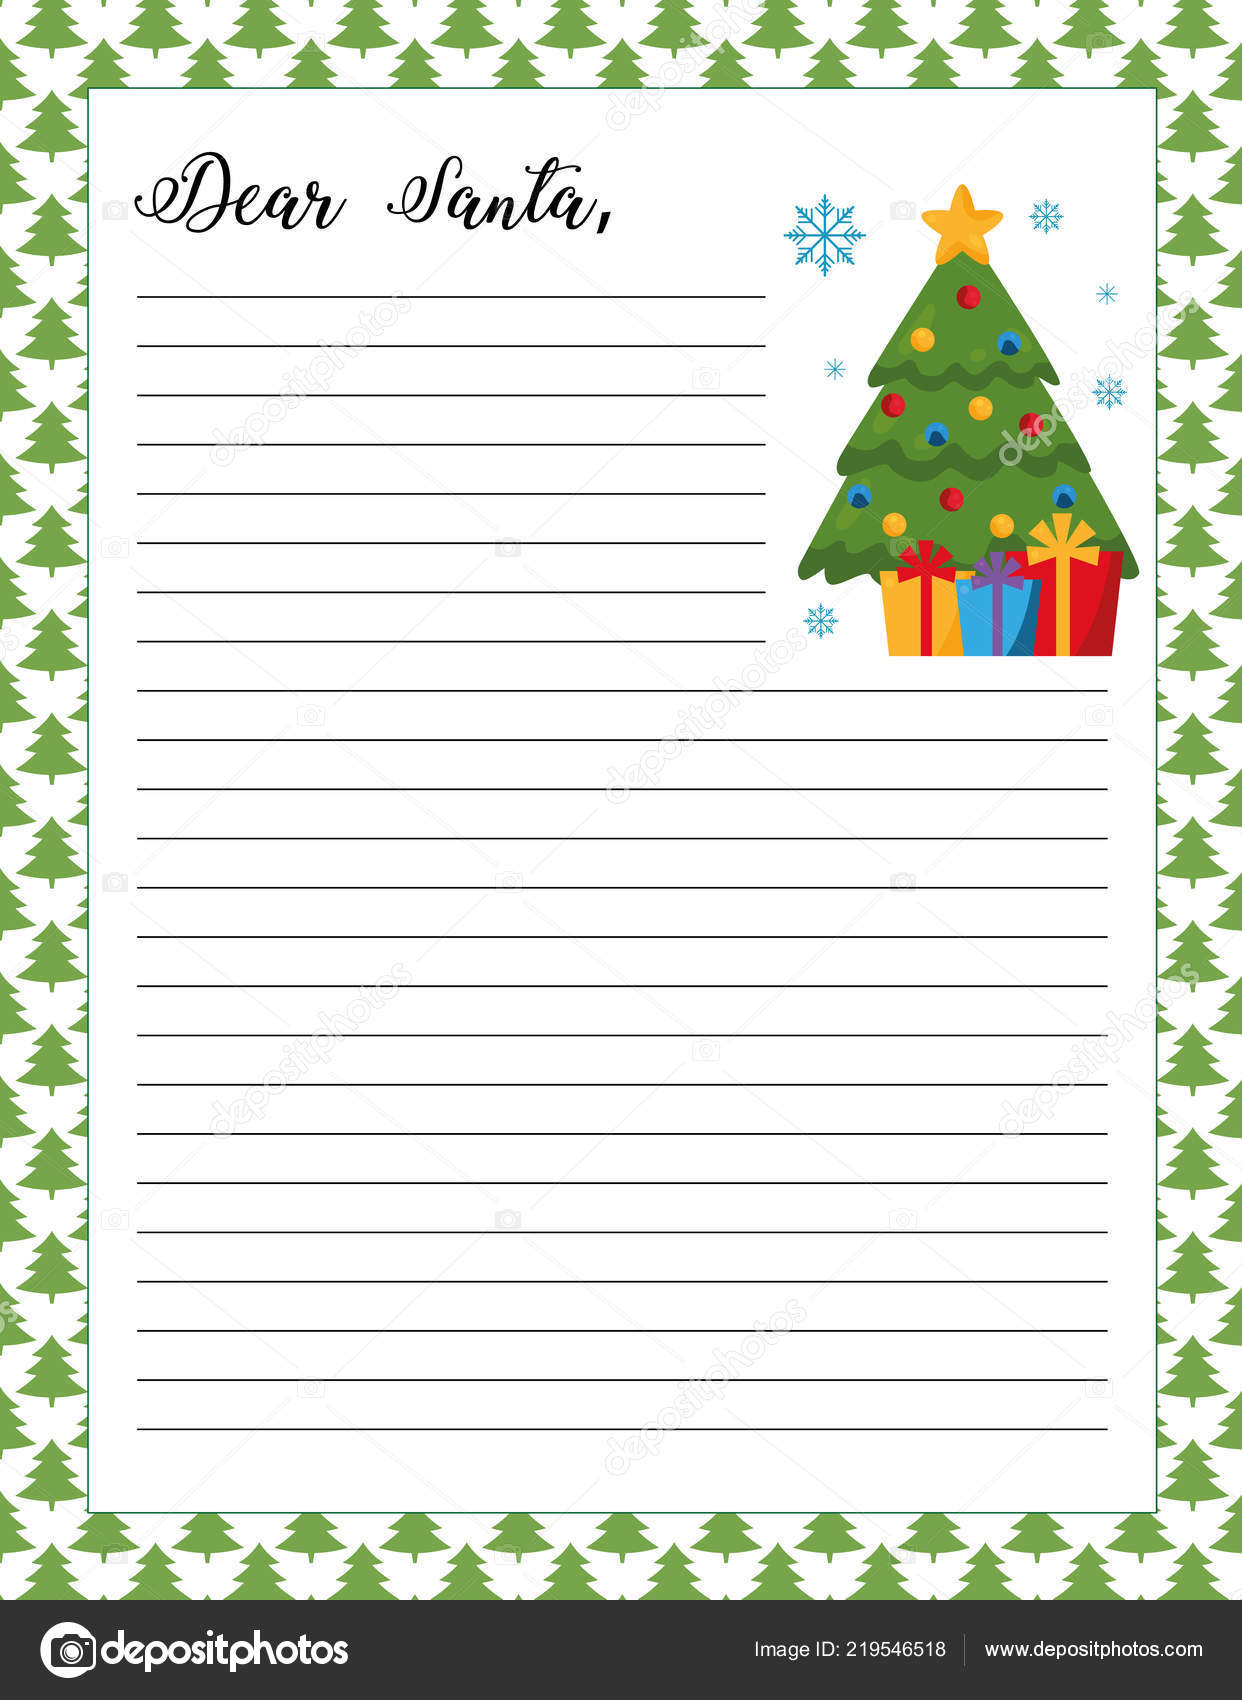 letter santa template printable page christmas tree gifts festive